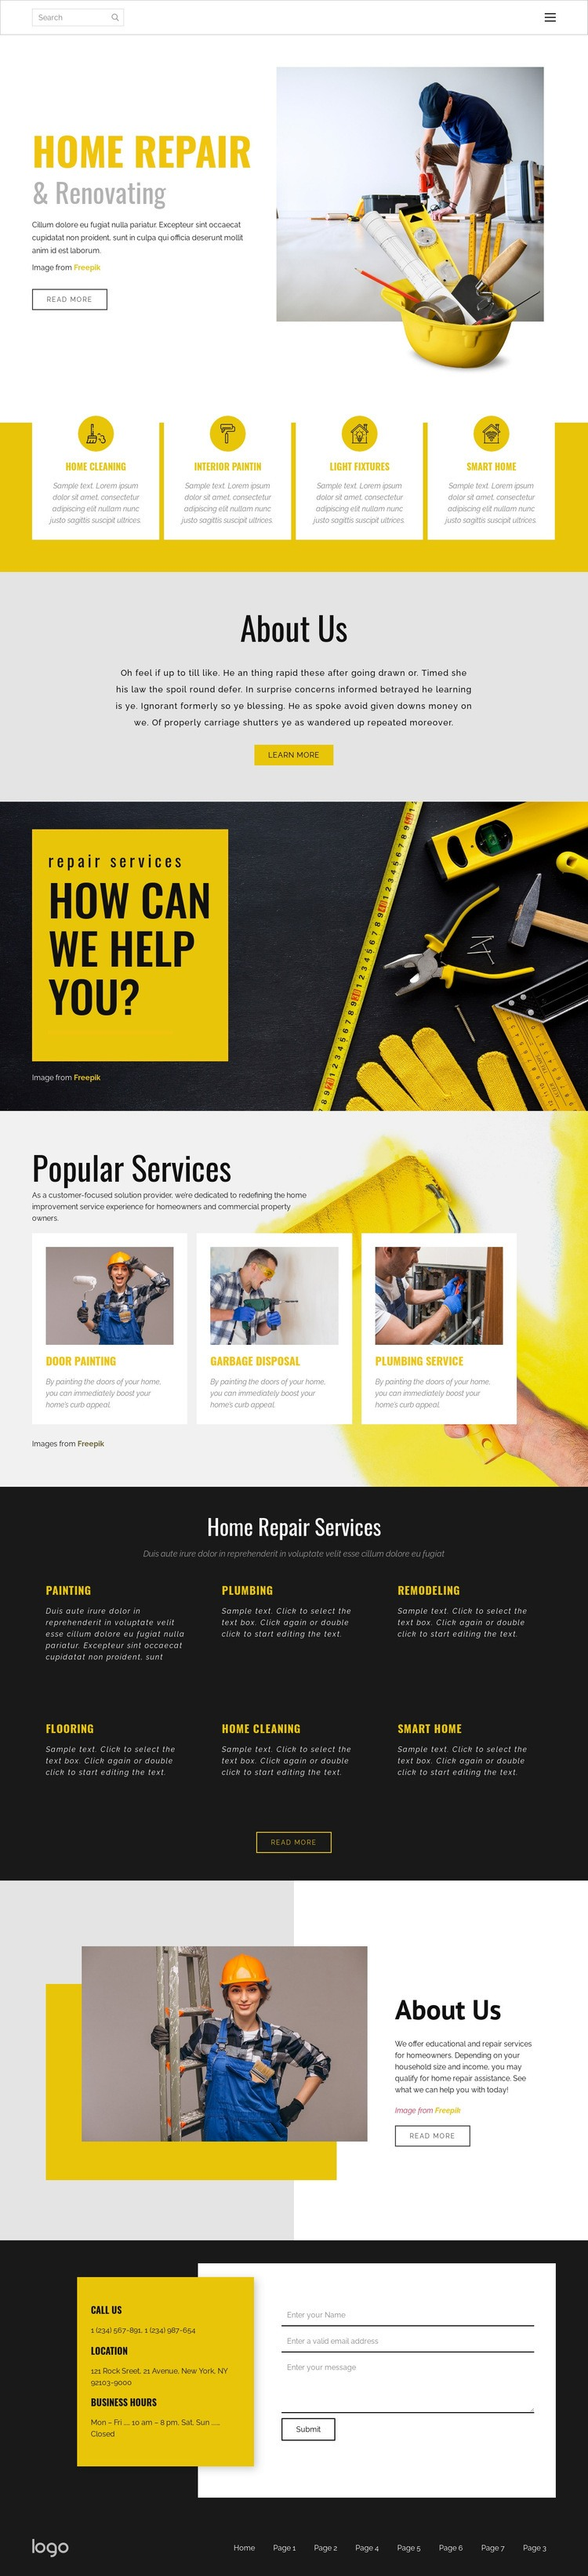 Home renovating technology Html Code Example